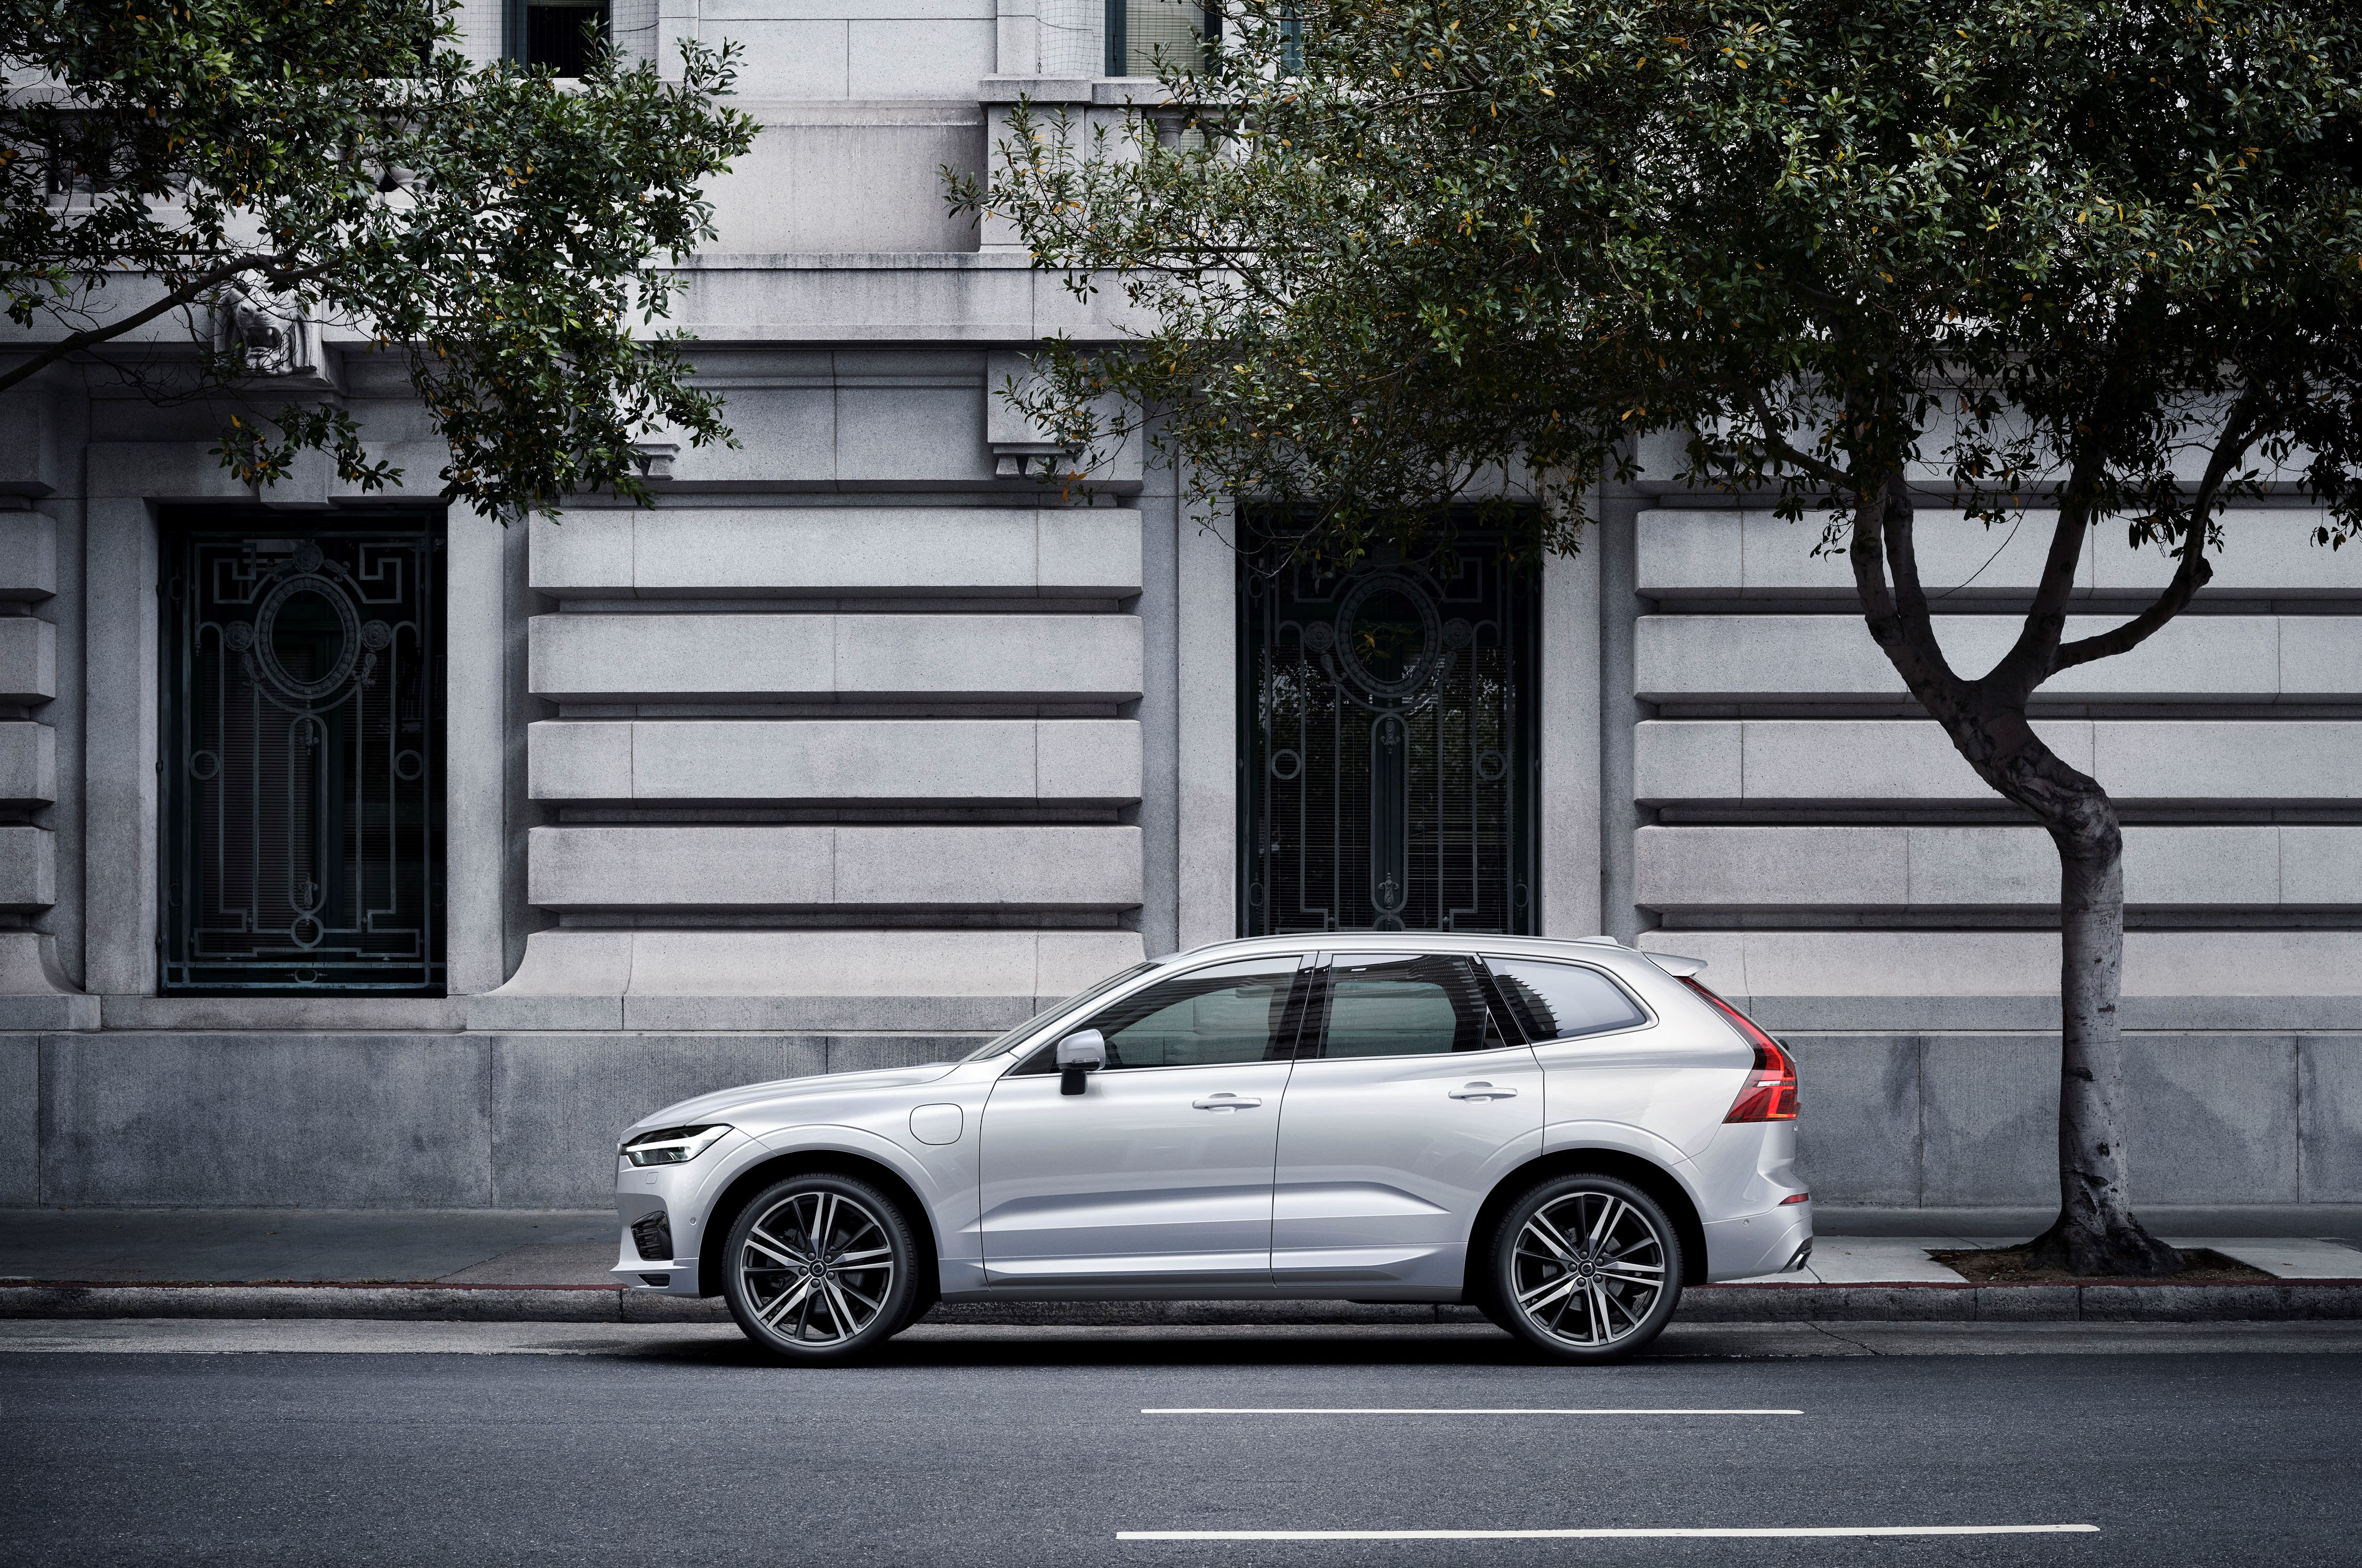 rolls the first side new line automobile volvo begins view production in news magazine sweden previous model replaces off